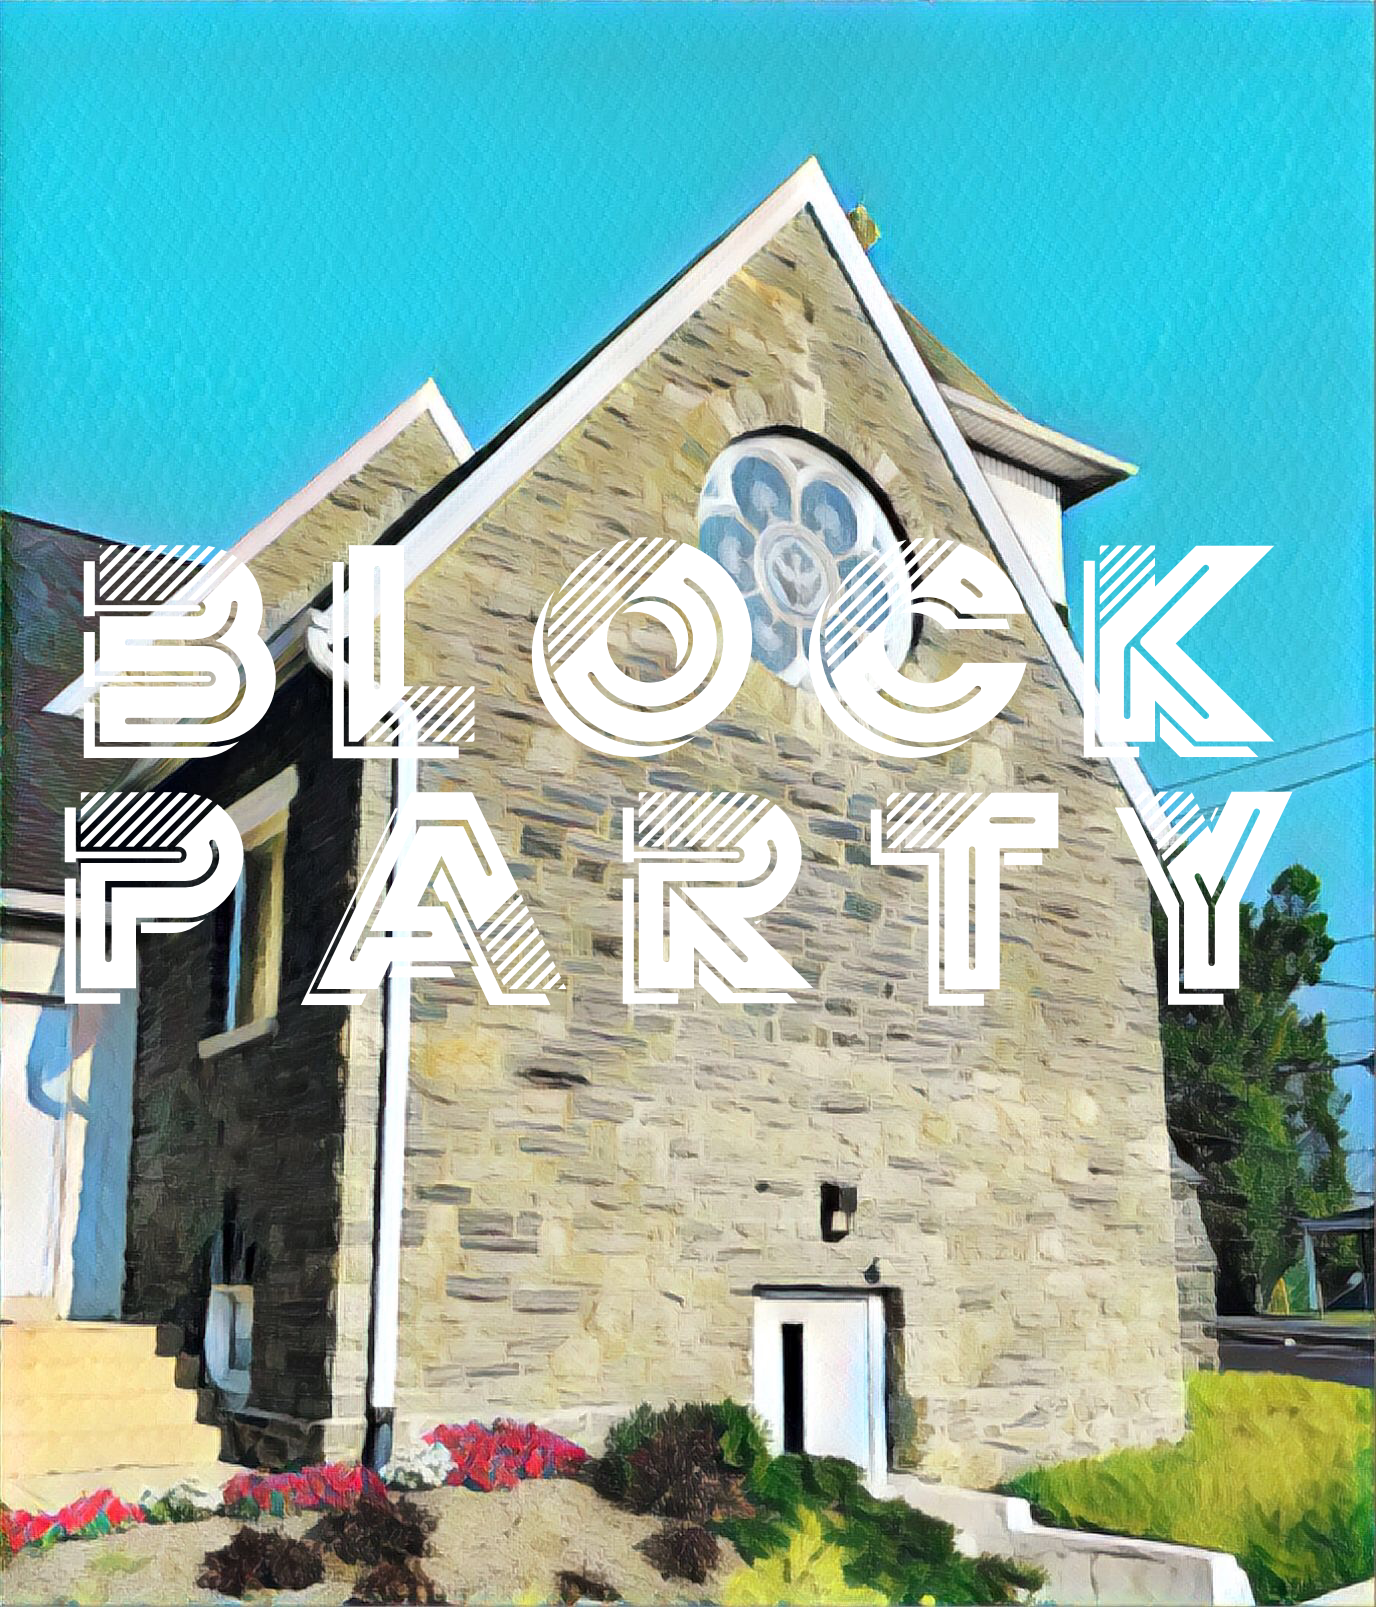 Join us for our annual Block Party - August 3rd from 11 am -2 pmFun for the whole family! Free games and food!